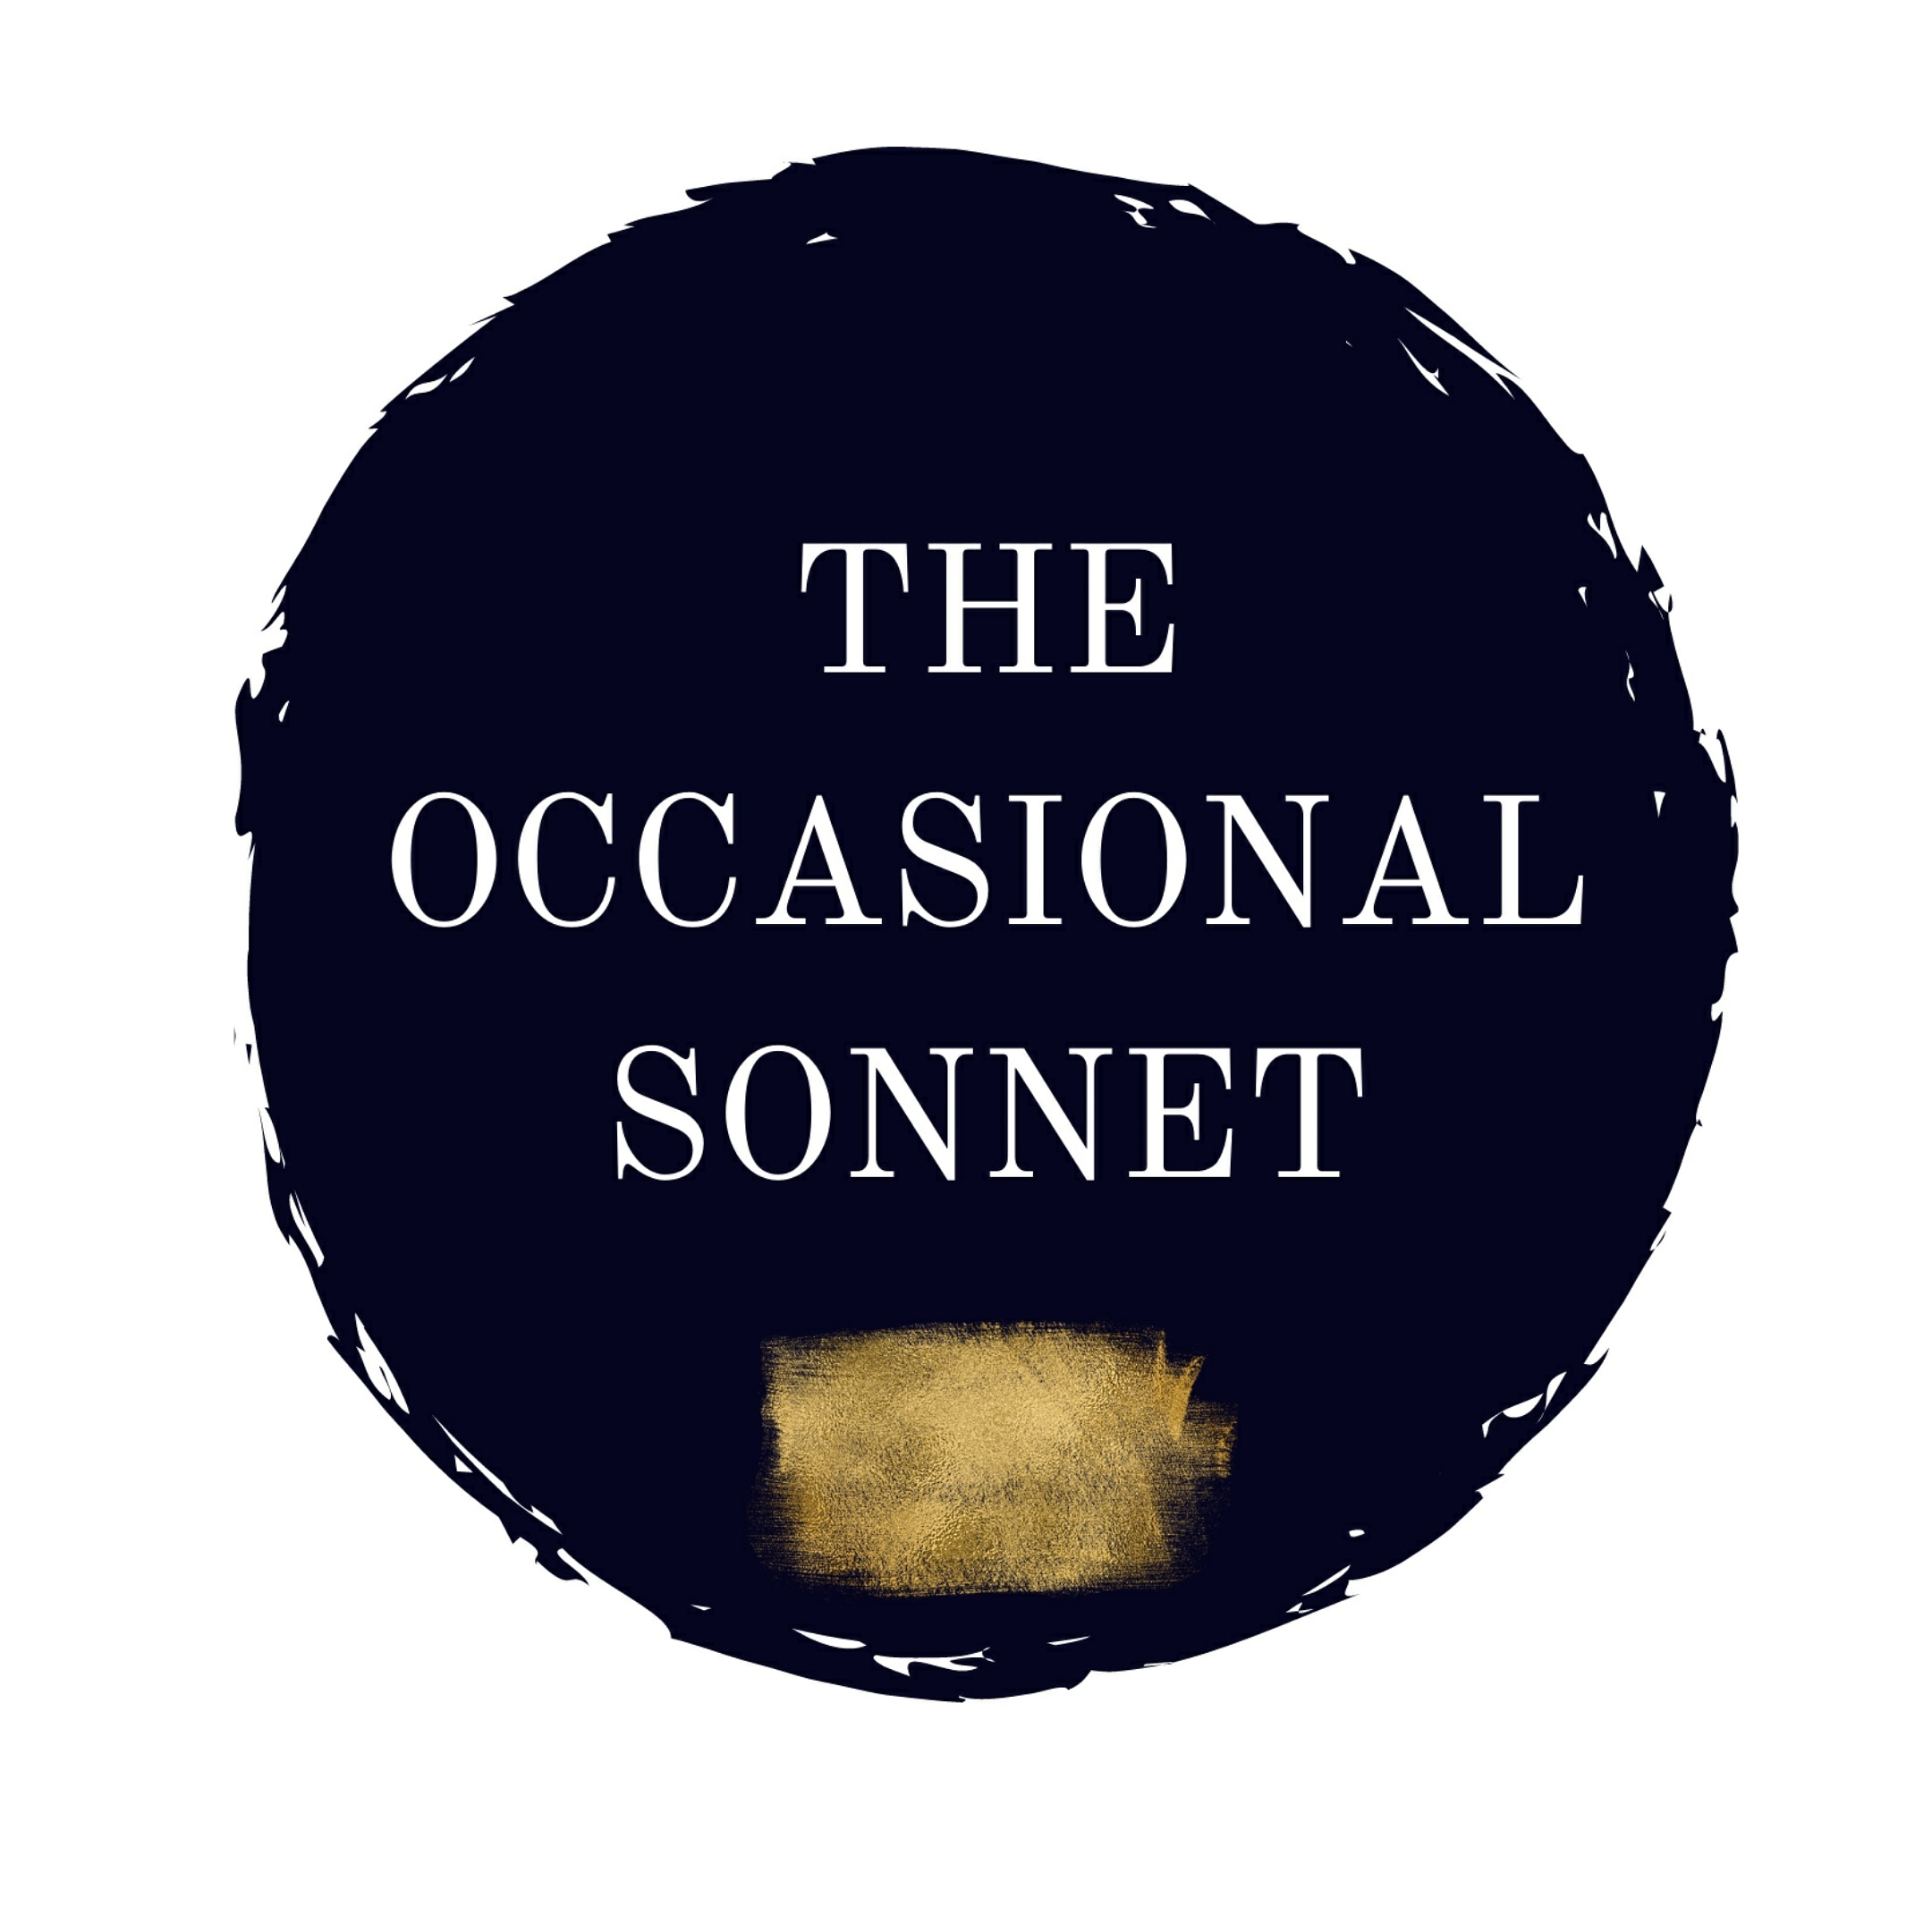 the occasional sonnet - bespoke sonnets - bespoke wedding vows - bespoke wedding readings - unique wedding poetry - unconventional wedding - 10